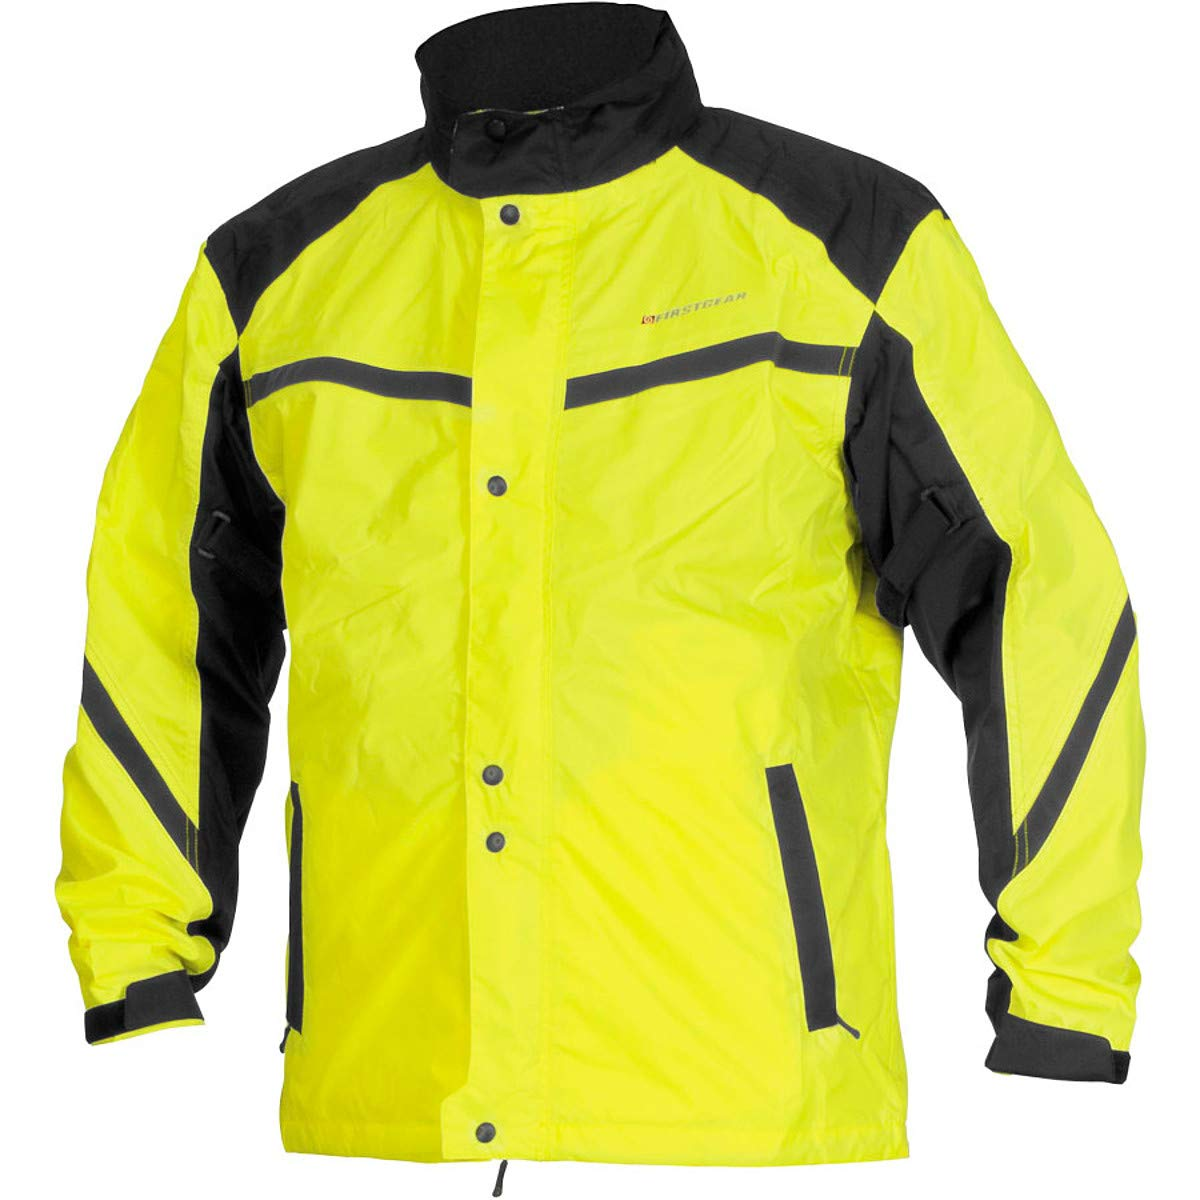 Amazon.com: firstgear Sierra Day Glo chamarra, L, color ...